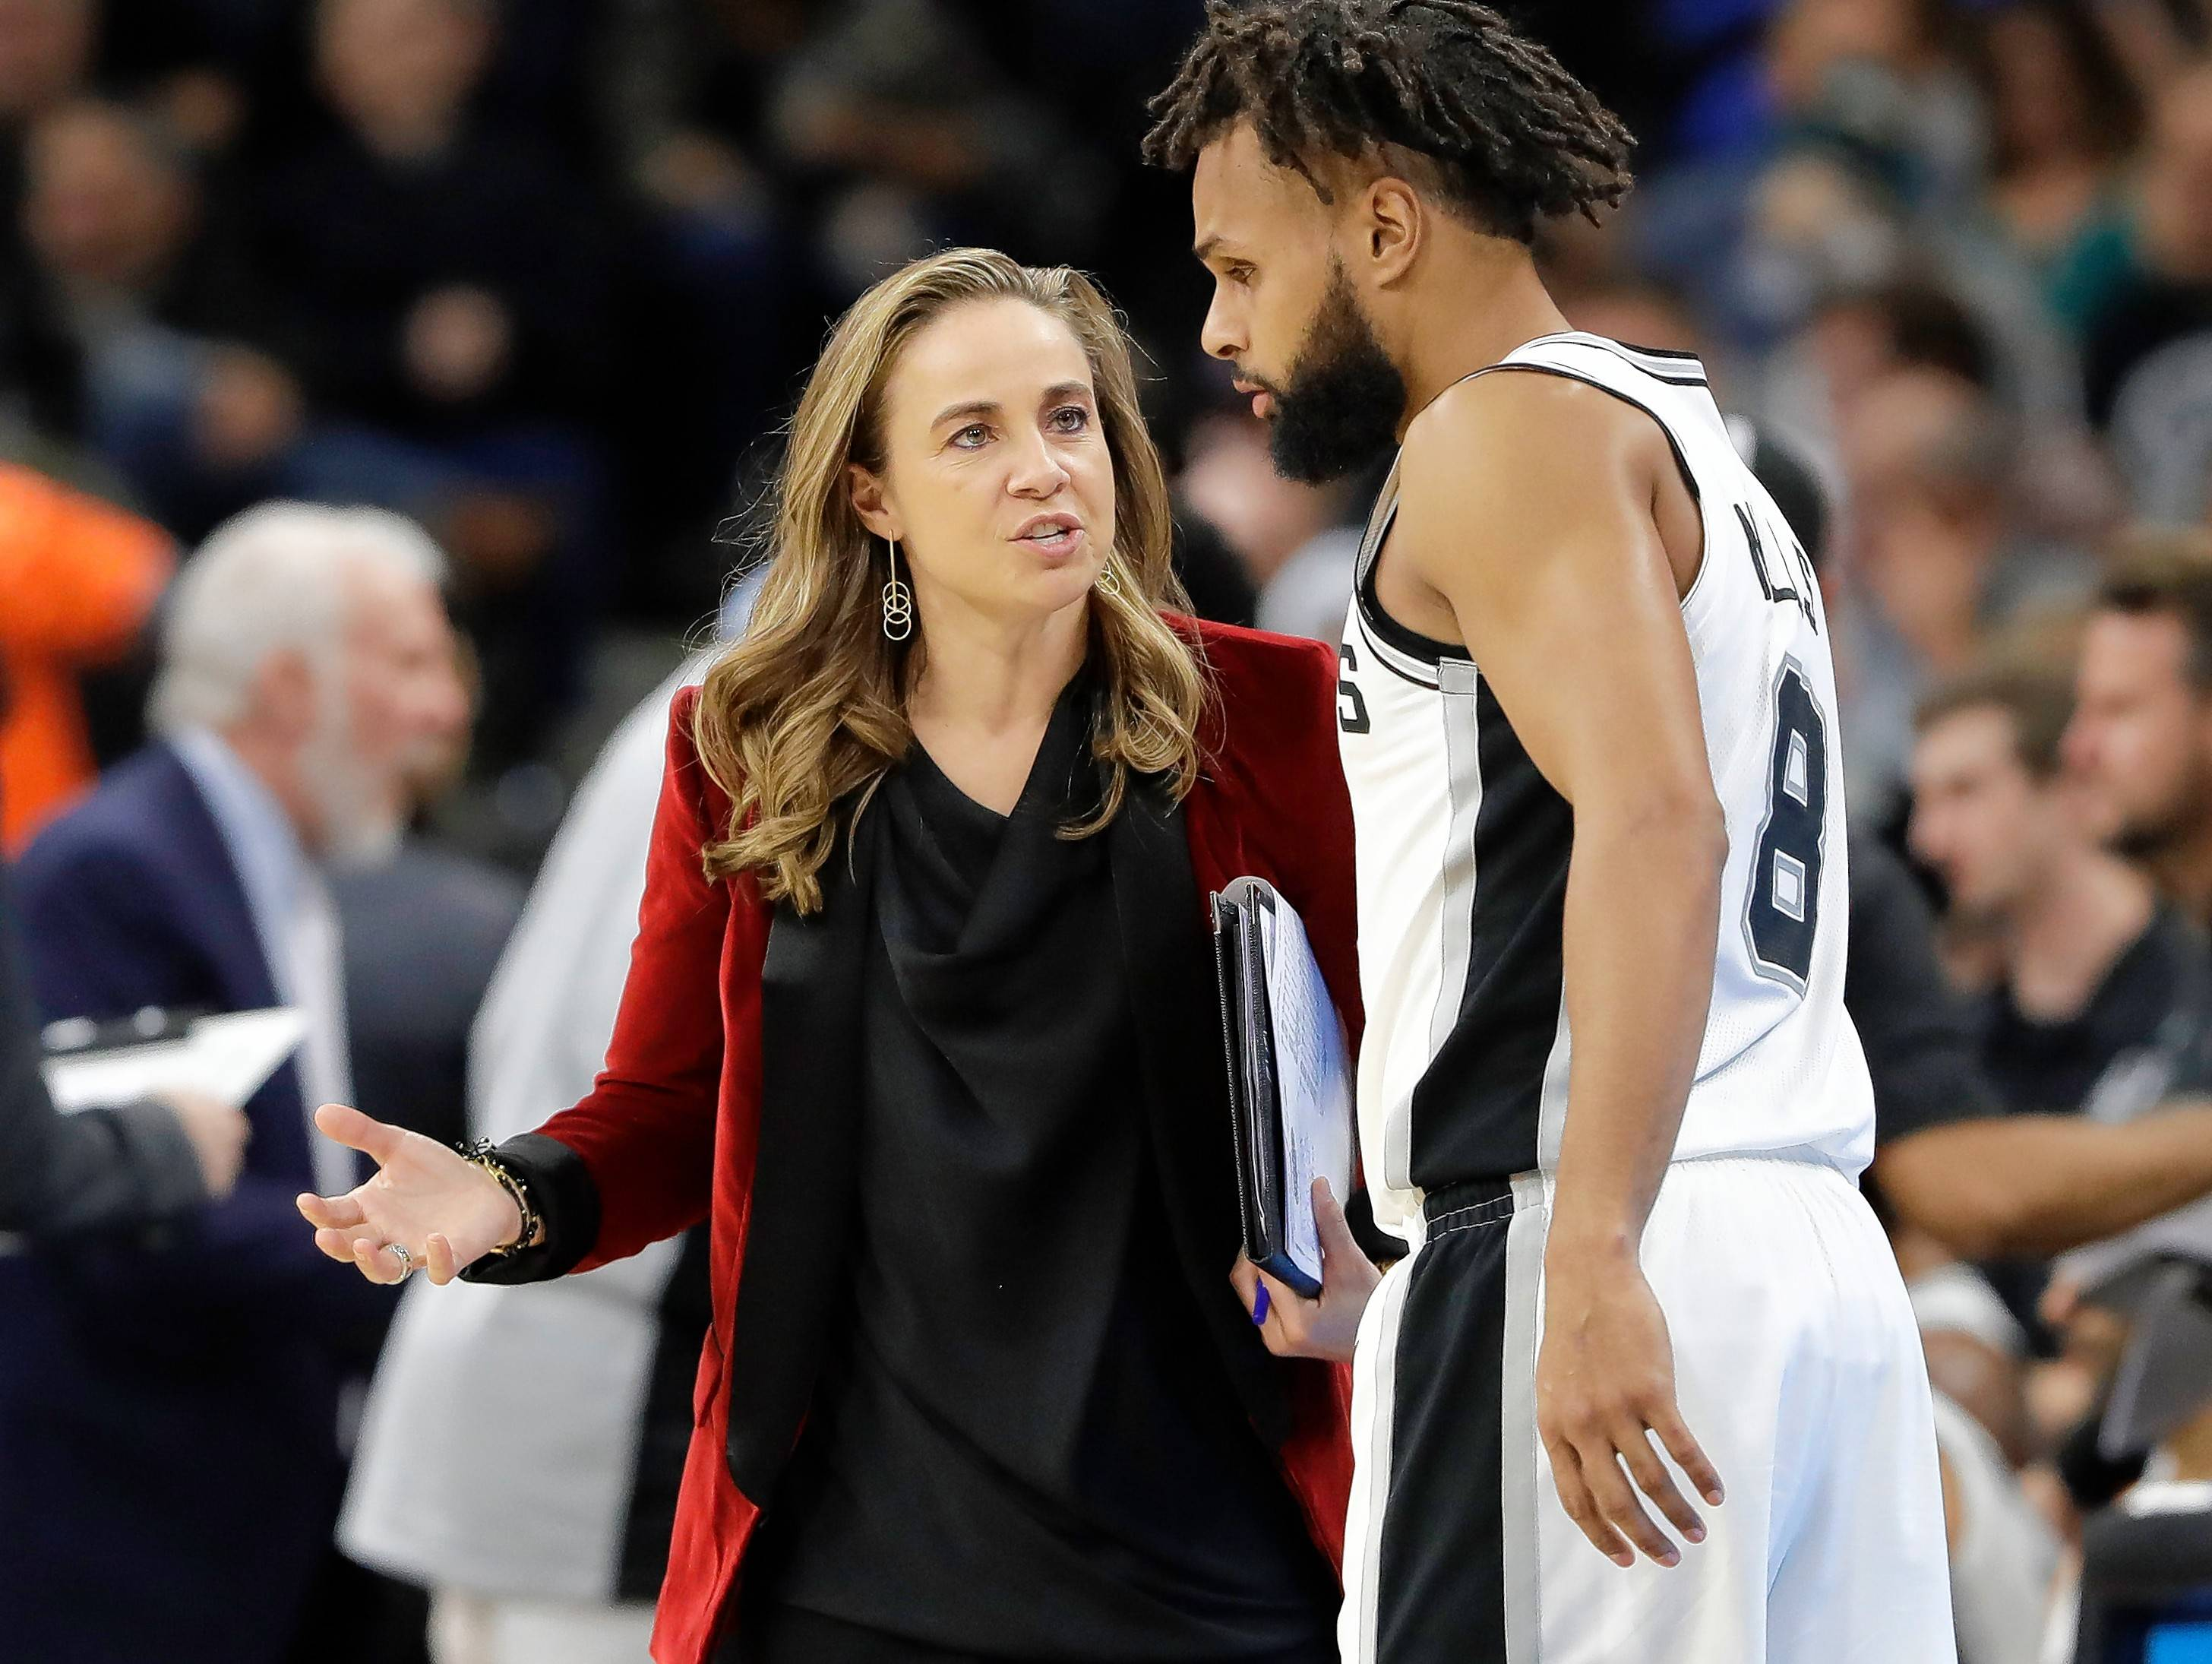 """coaching men vs coaching women Job as other coaches"""" twice as many female coaches as male coaches felt their  performance was evaluated differently because of gender (15% versus 6%."""